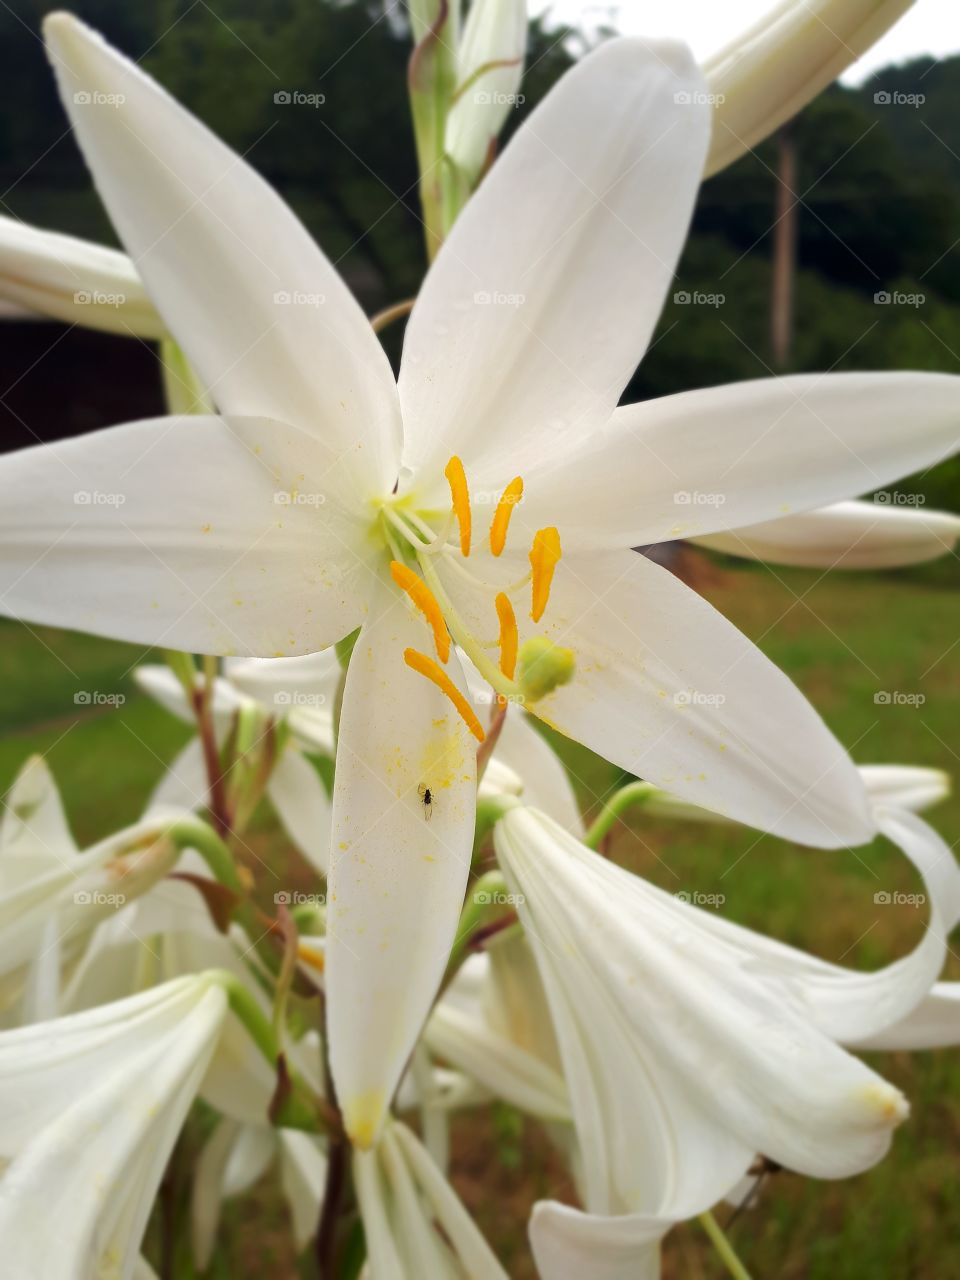 White lilies look beautiful and their smell is pleasant and refreshing